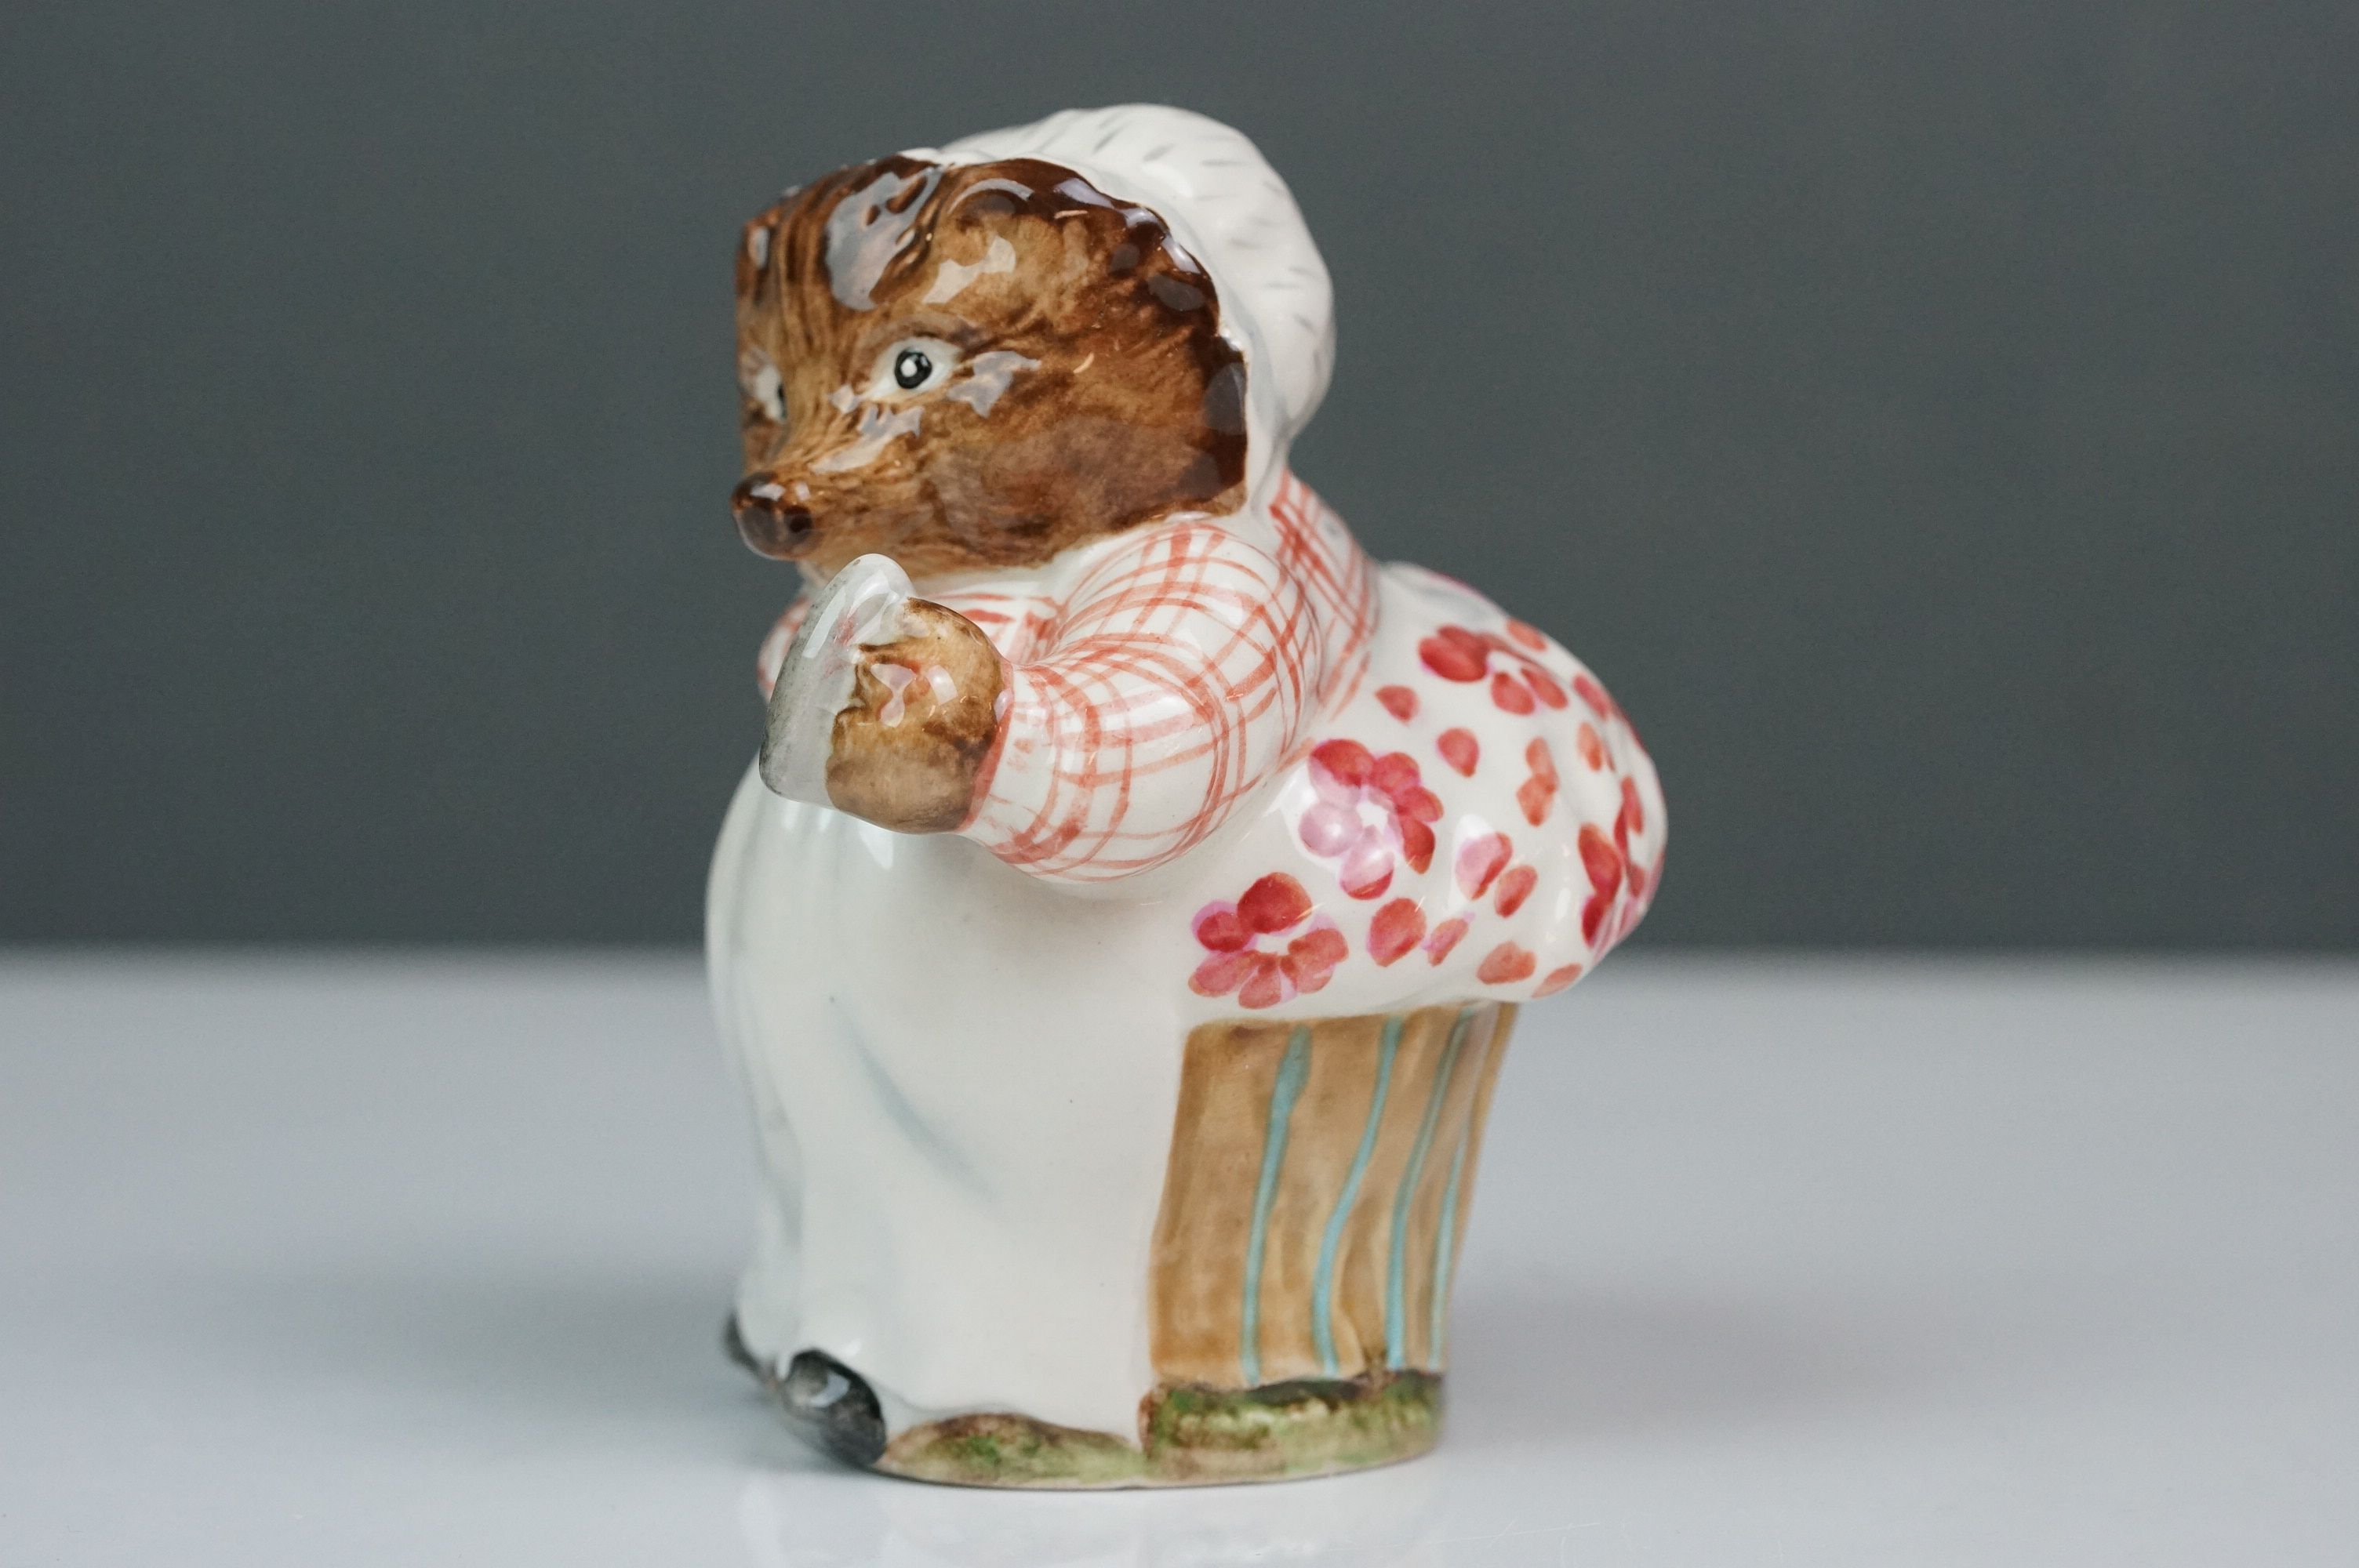 Beswick Beatrix Potter's Mrs Tiggy-Winkle, first version, first variation, gloss finish, BP 1B No. - Image 3 of 5